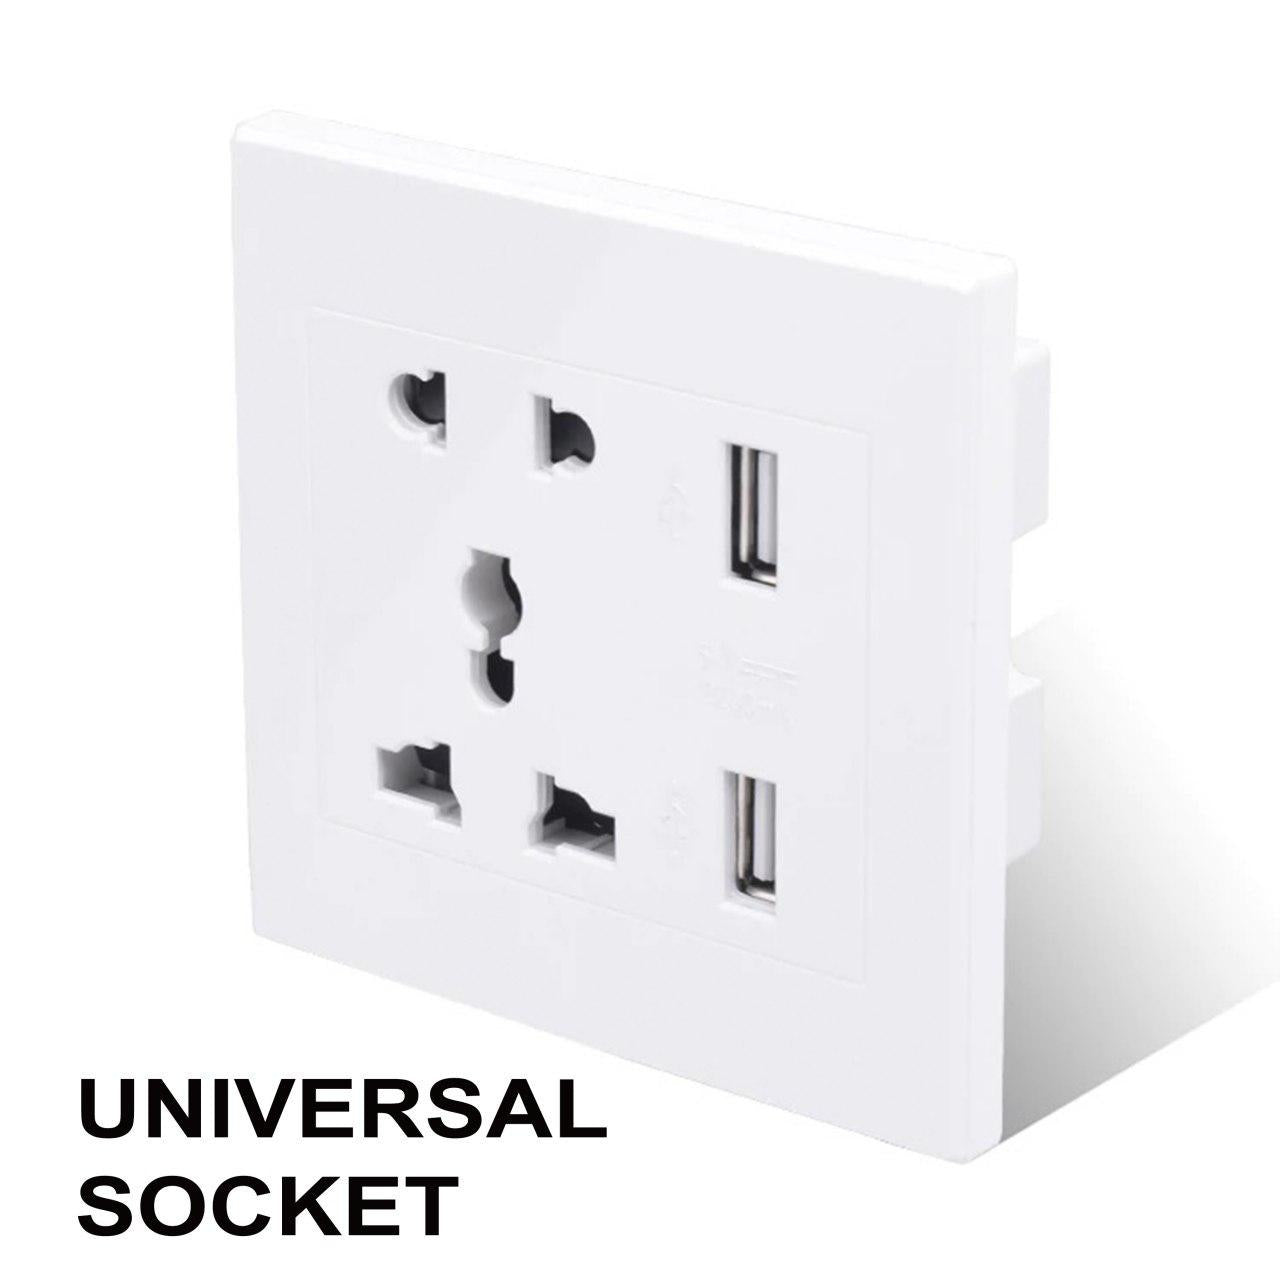 Weinflux - Plug socket with USB ports